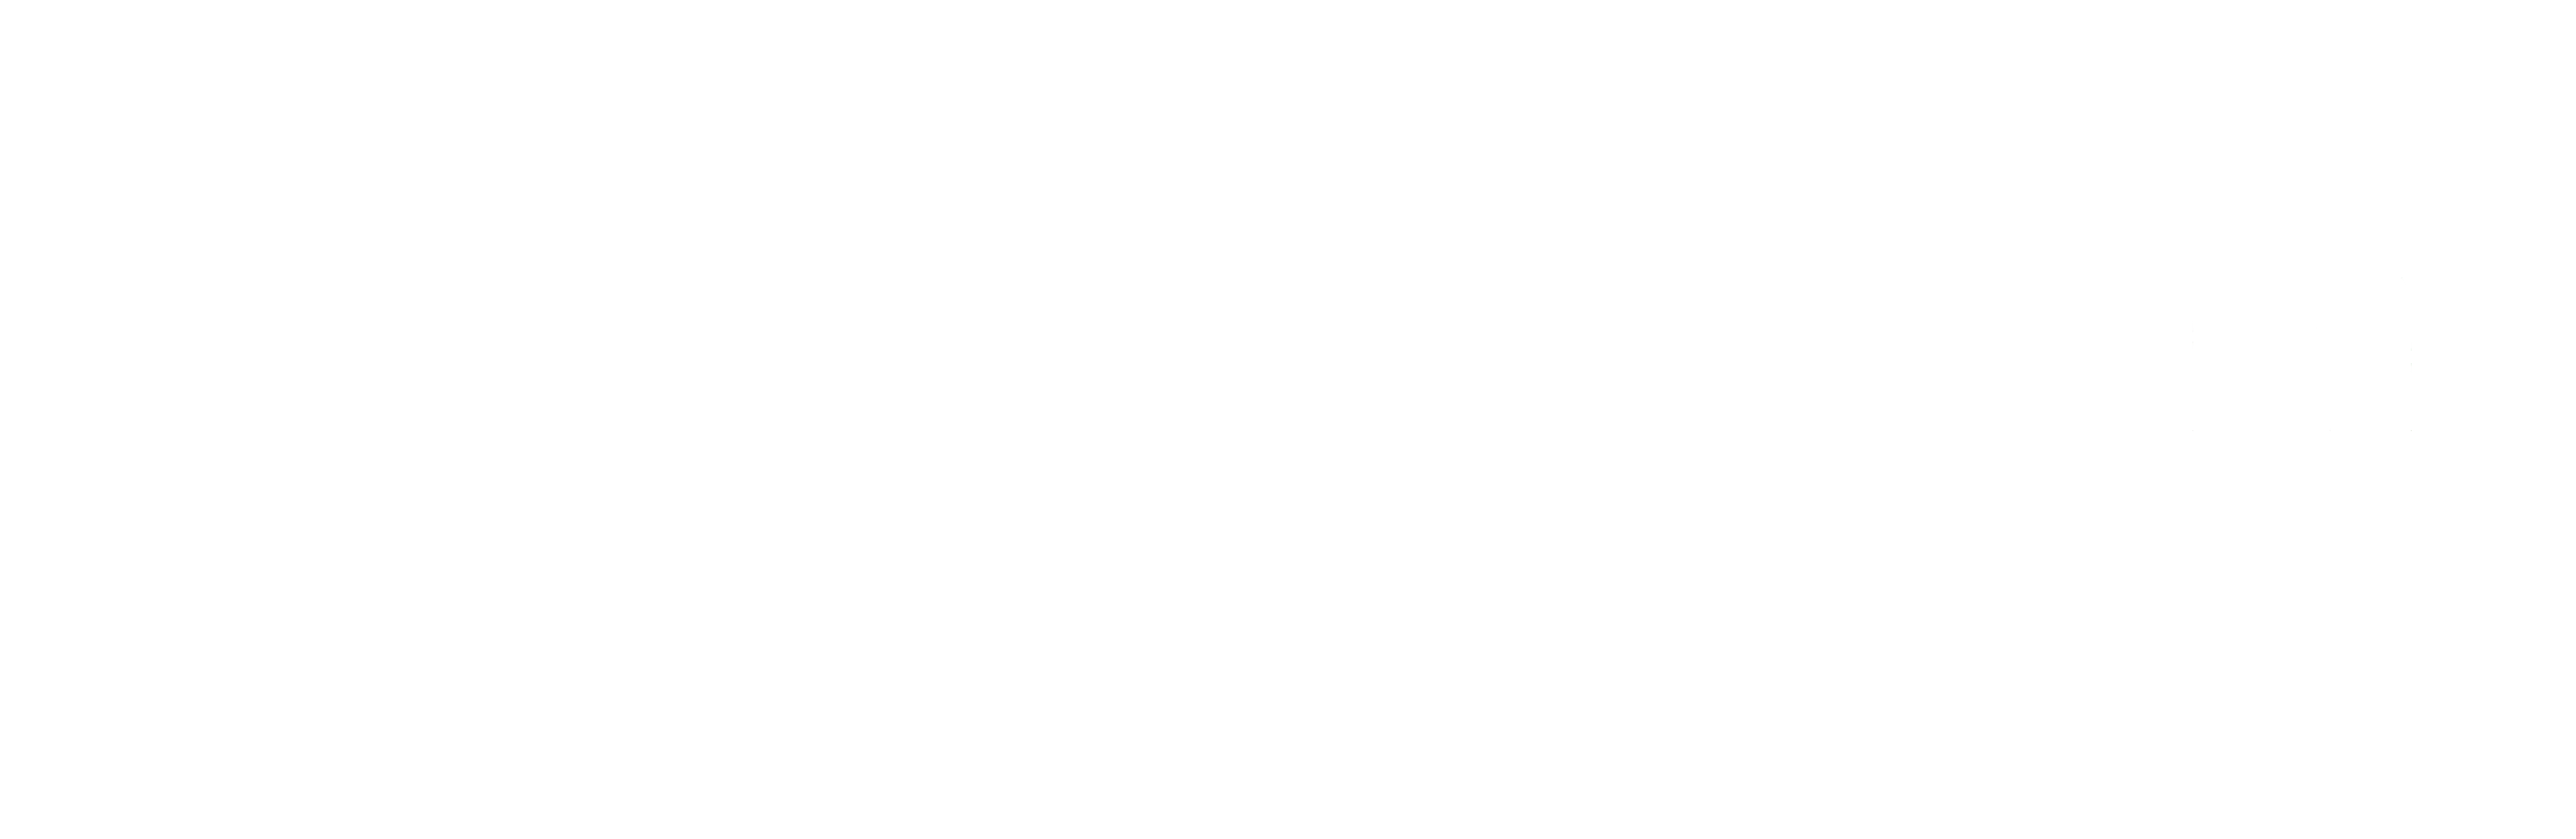 harrogate theatres bringing the magic of live entertainment to